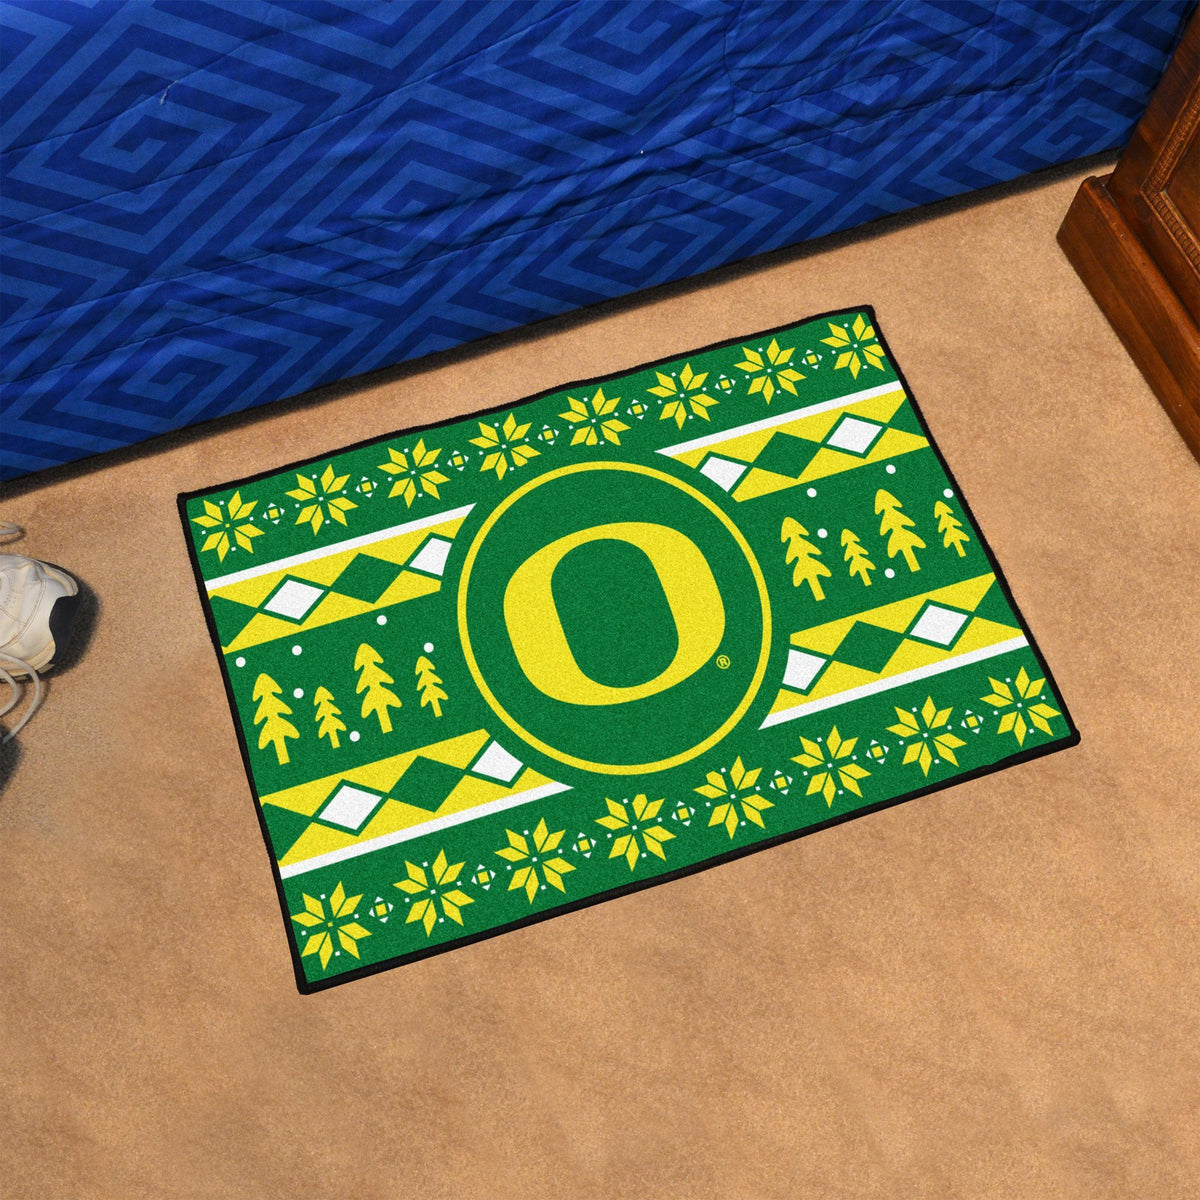 Collegiate - Holiday Sweater Starter Mat Collegiate Mats, Rectangular Mats, Holiday Sweater Starter Mat, Collegiate, Home Fan Mats Oregon